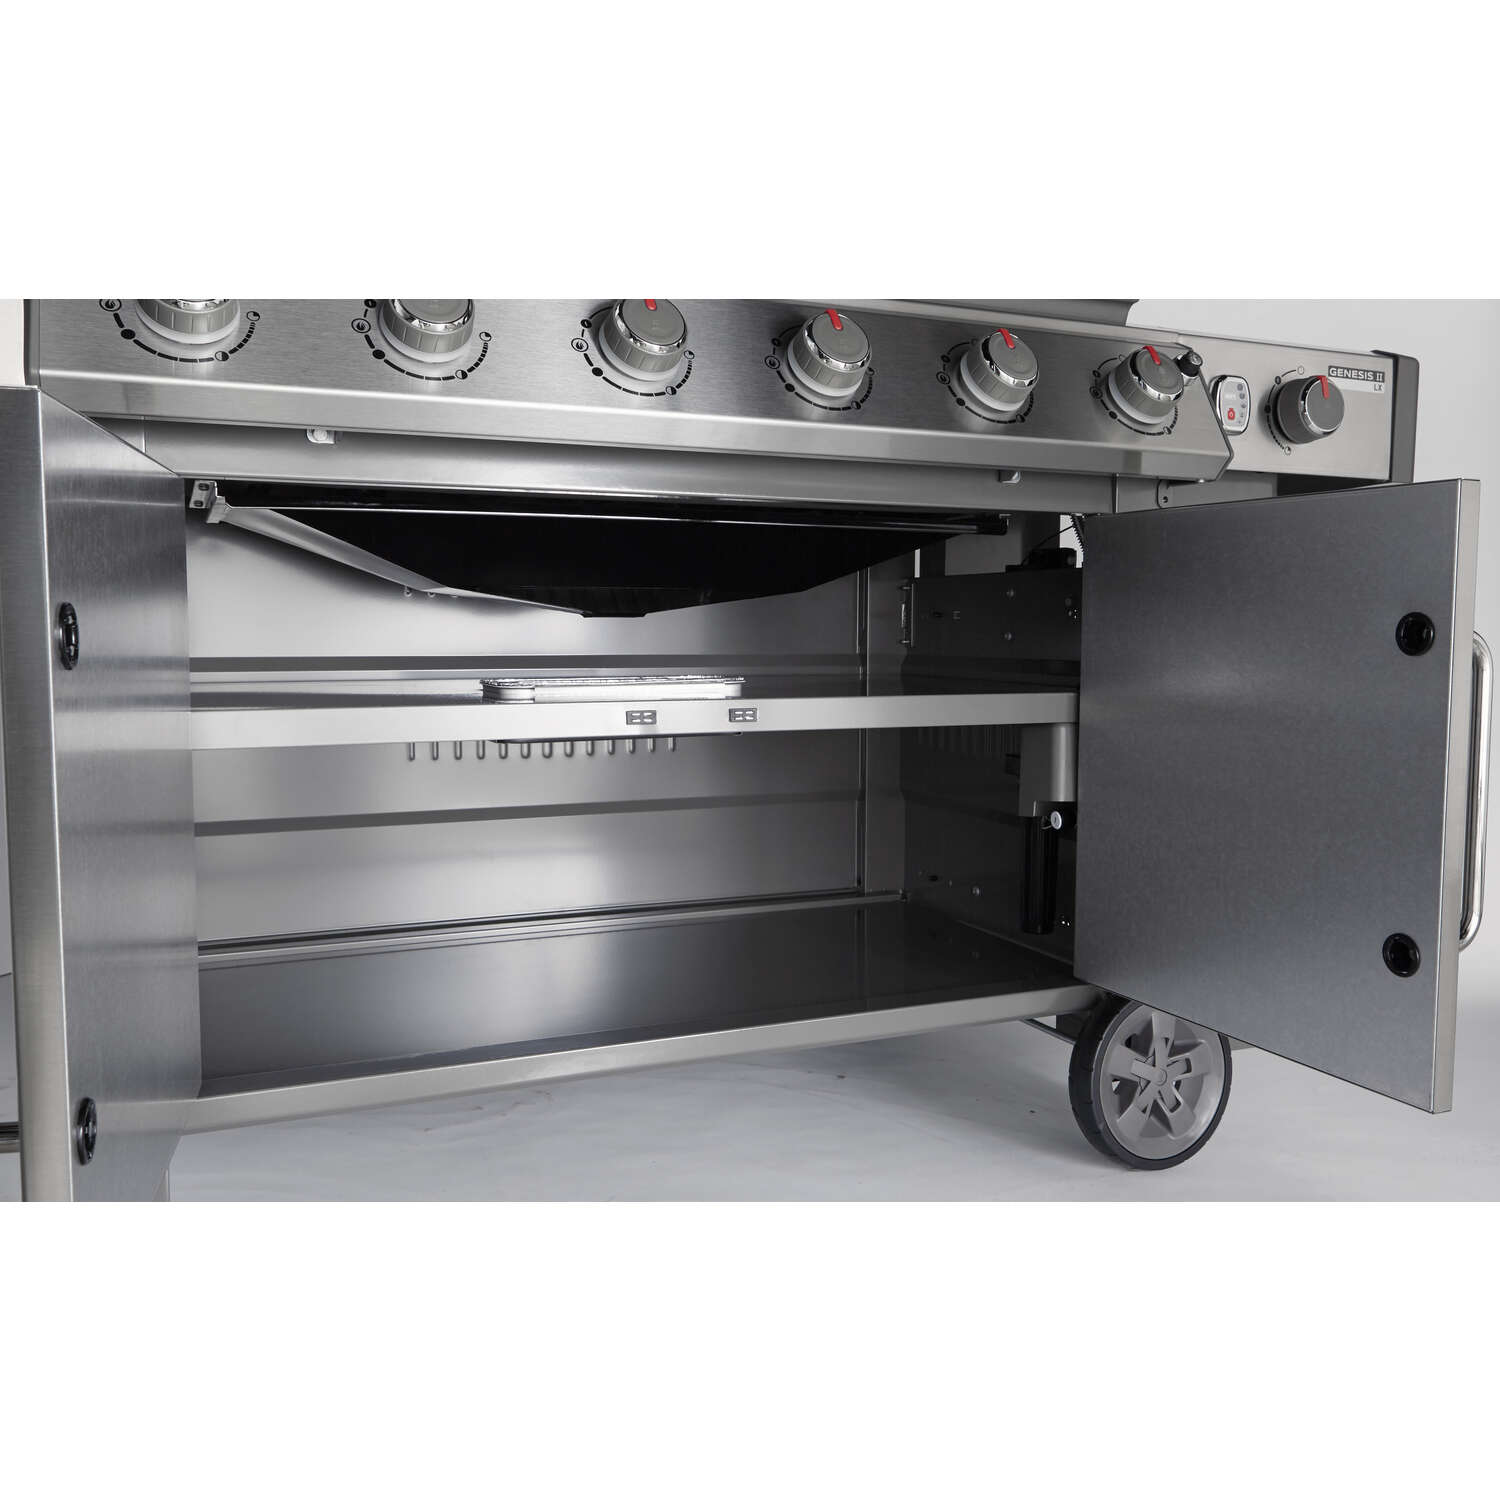 Weber  Genesis II LX S-640  6 burners Natural Gas  Stainless Steel  Grill  72000 BTU